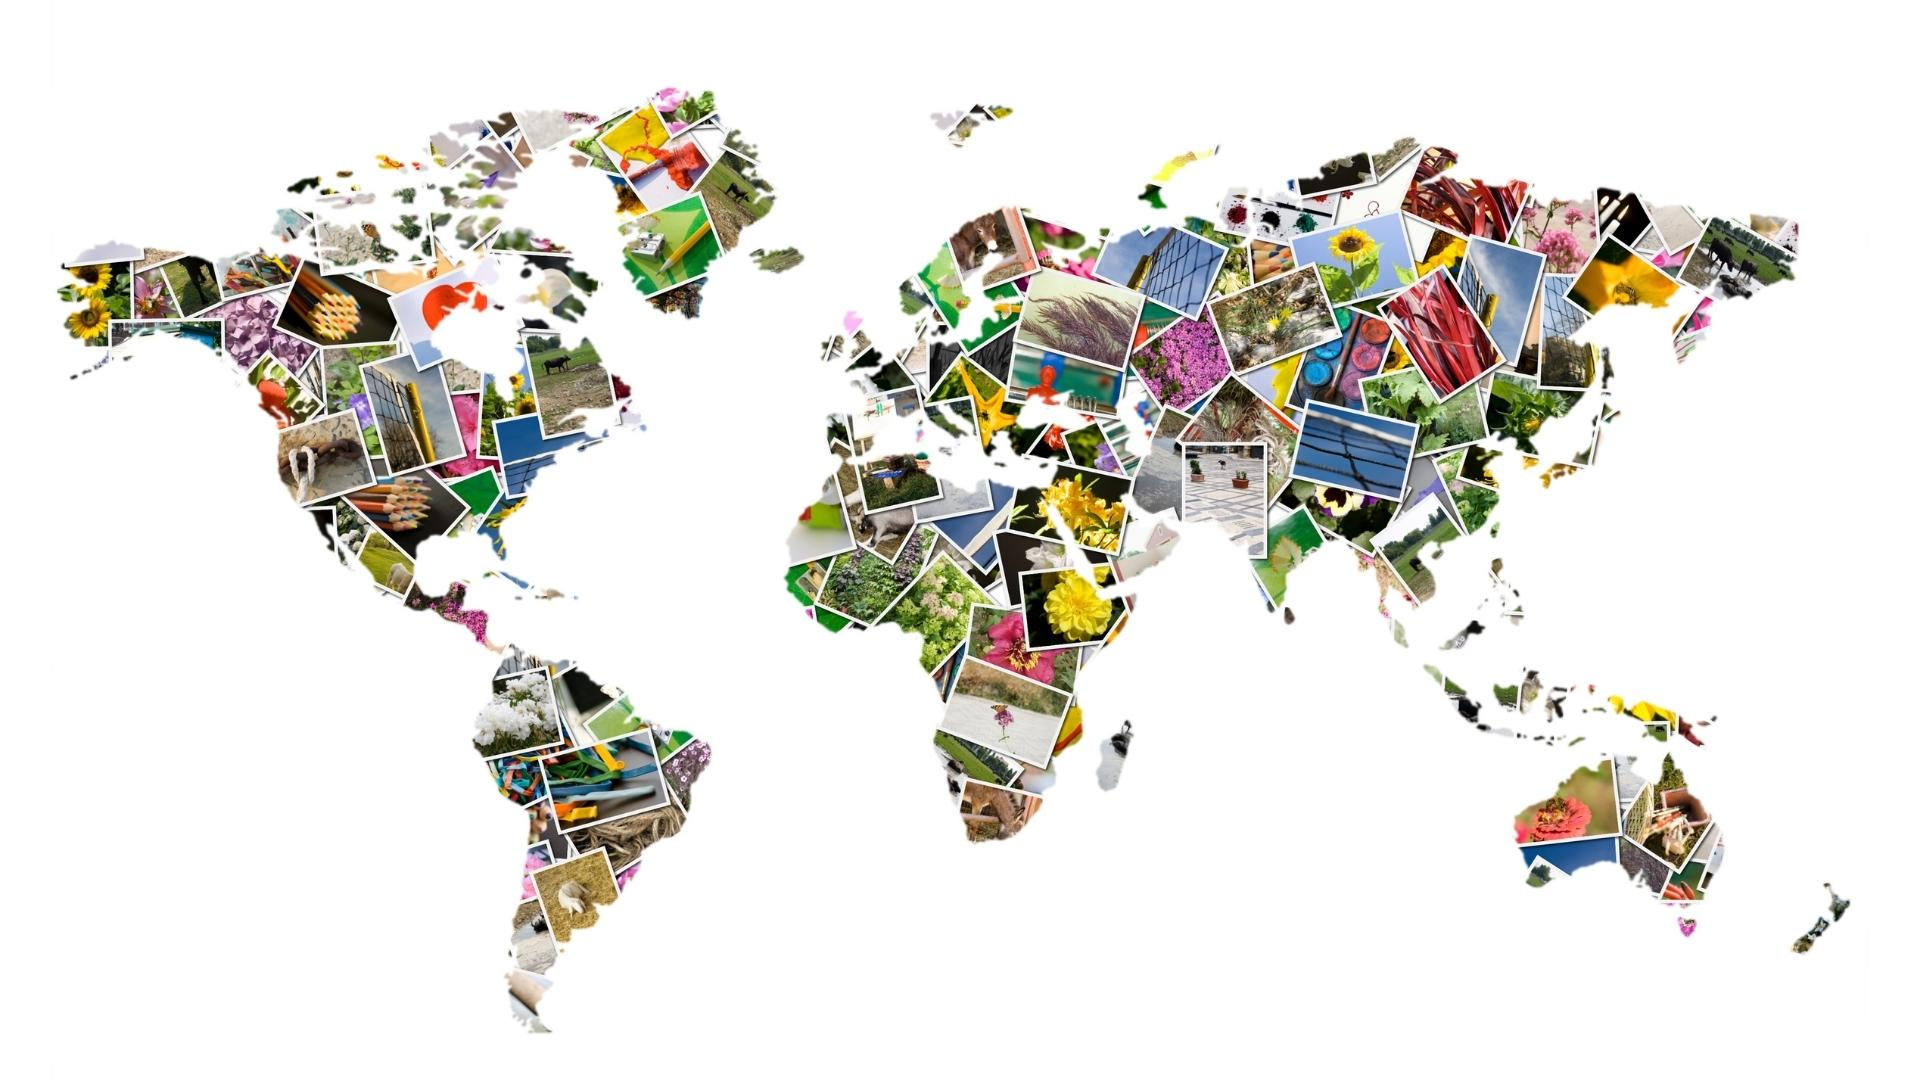 Anthropology online courses. Map of the world made out of photographs